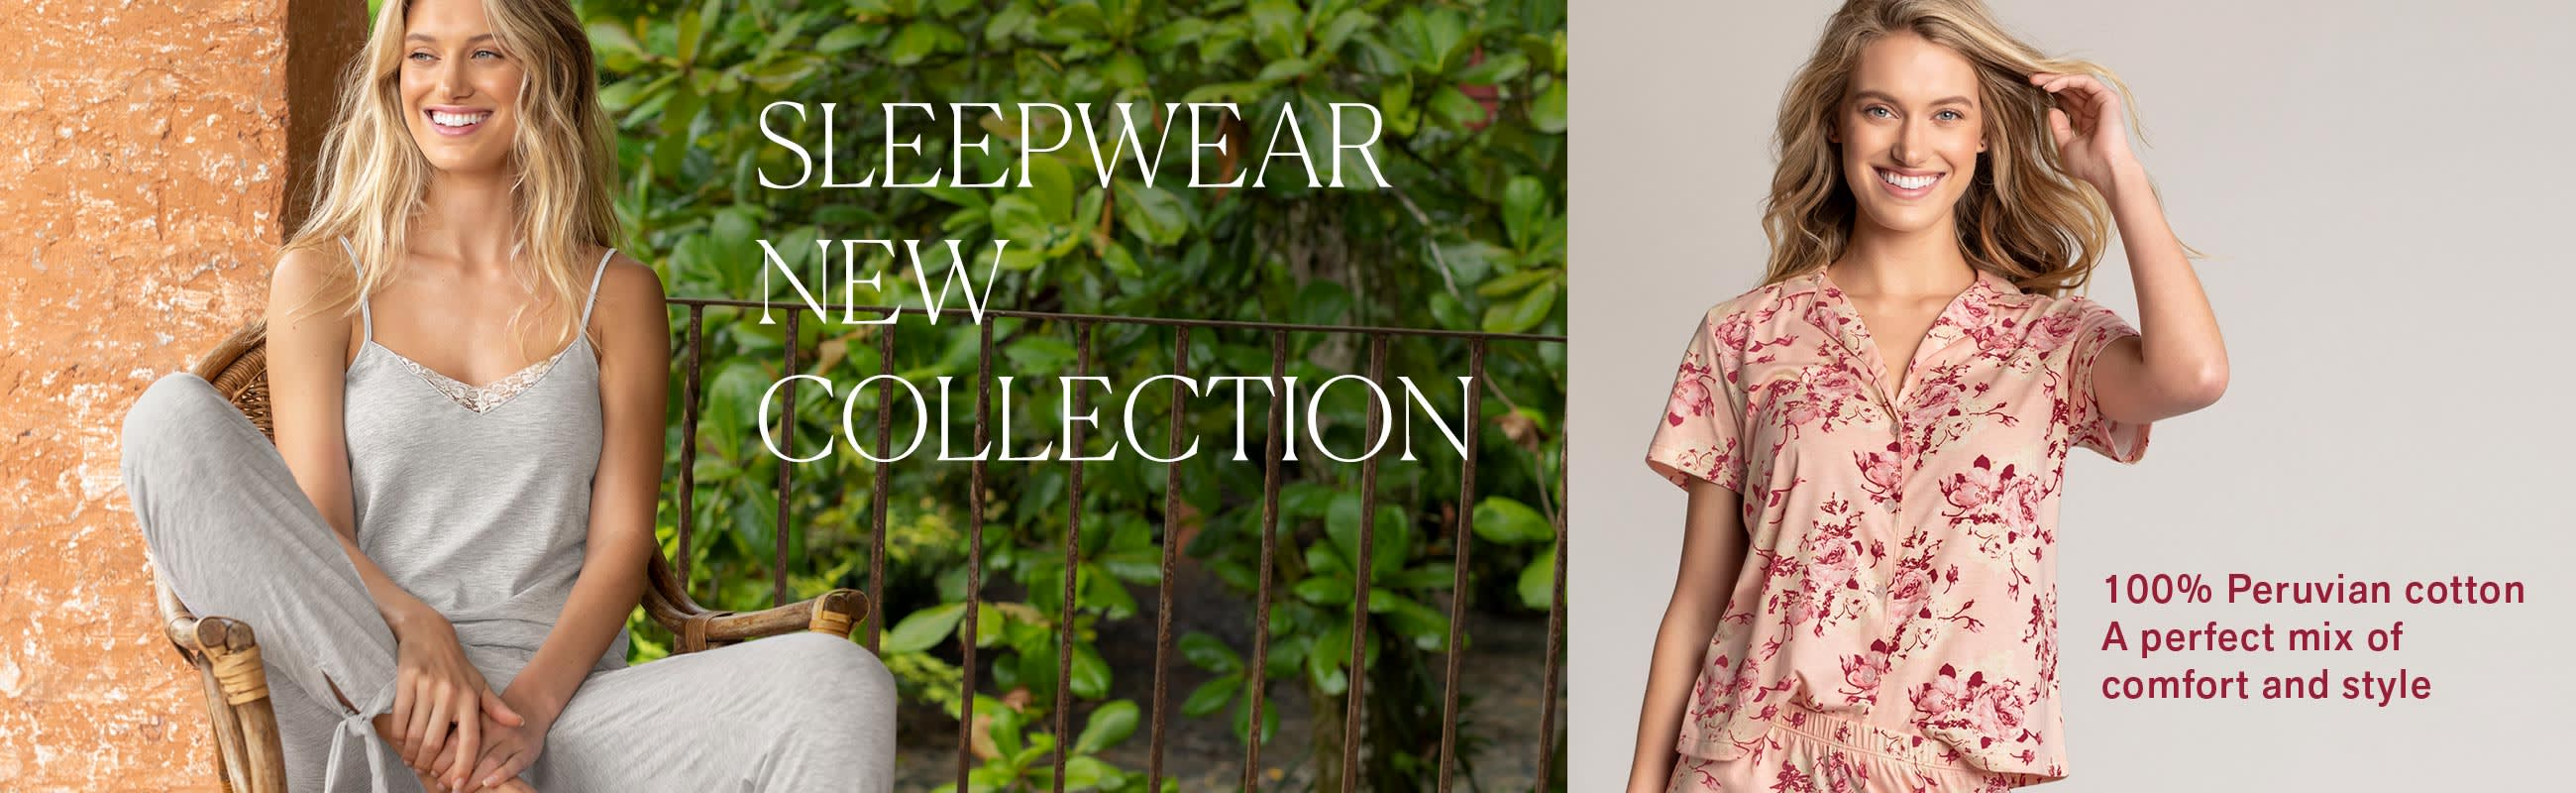 Sleepwear New Collection